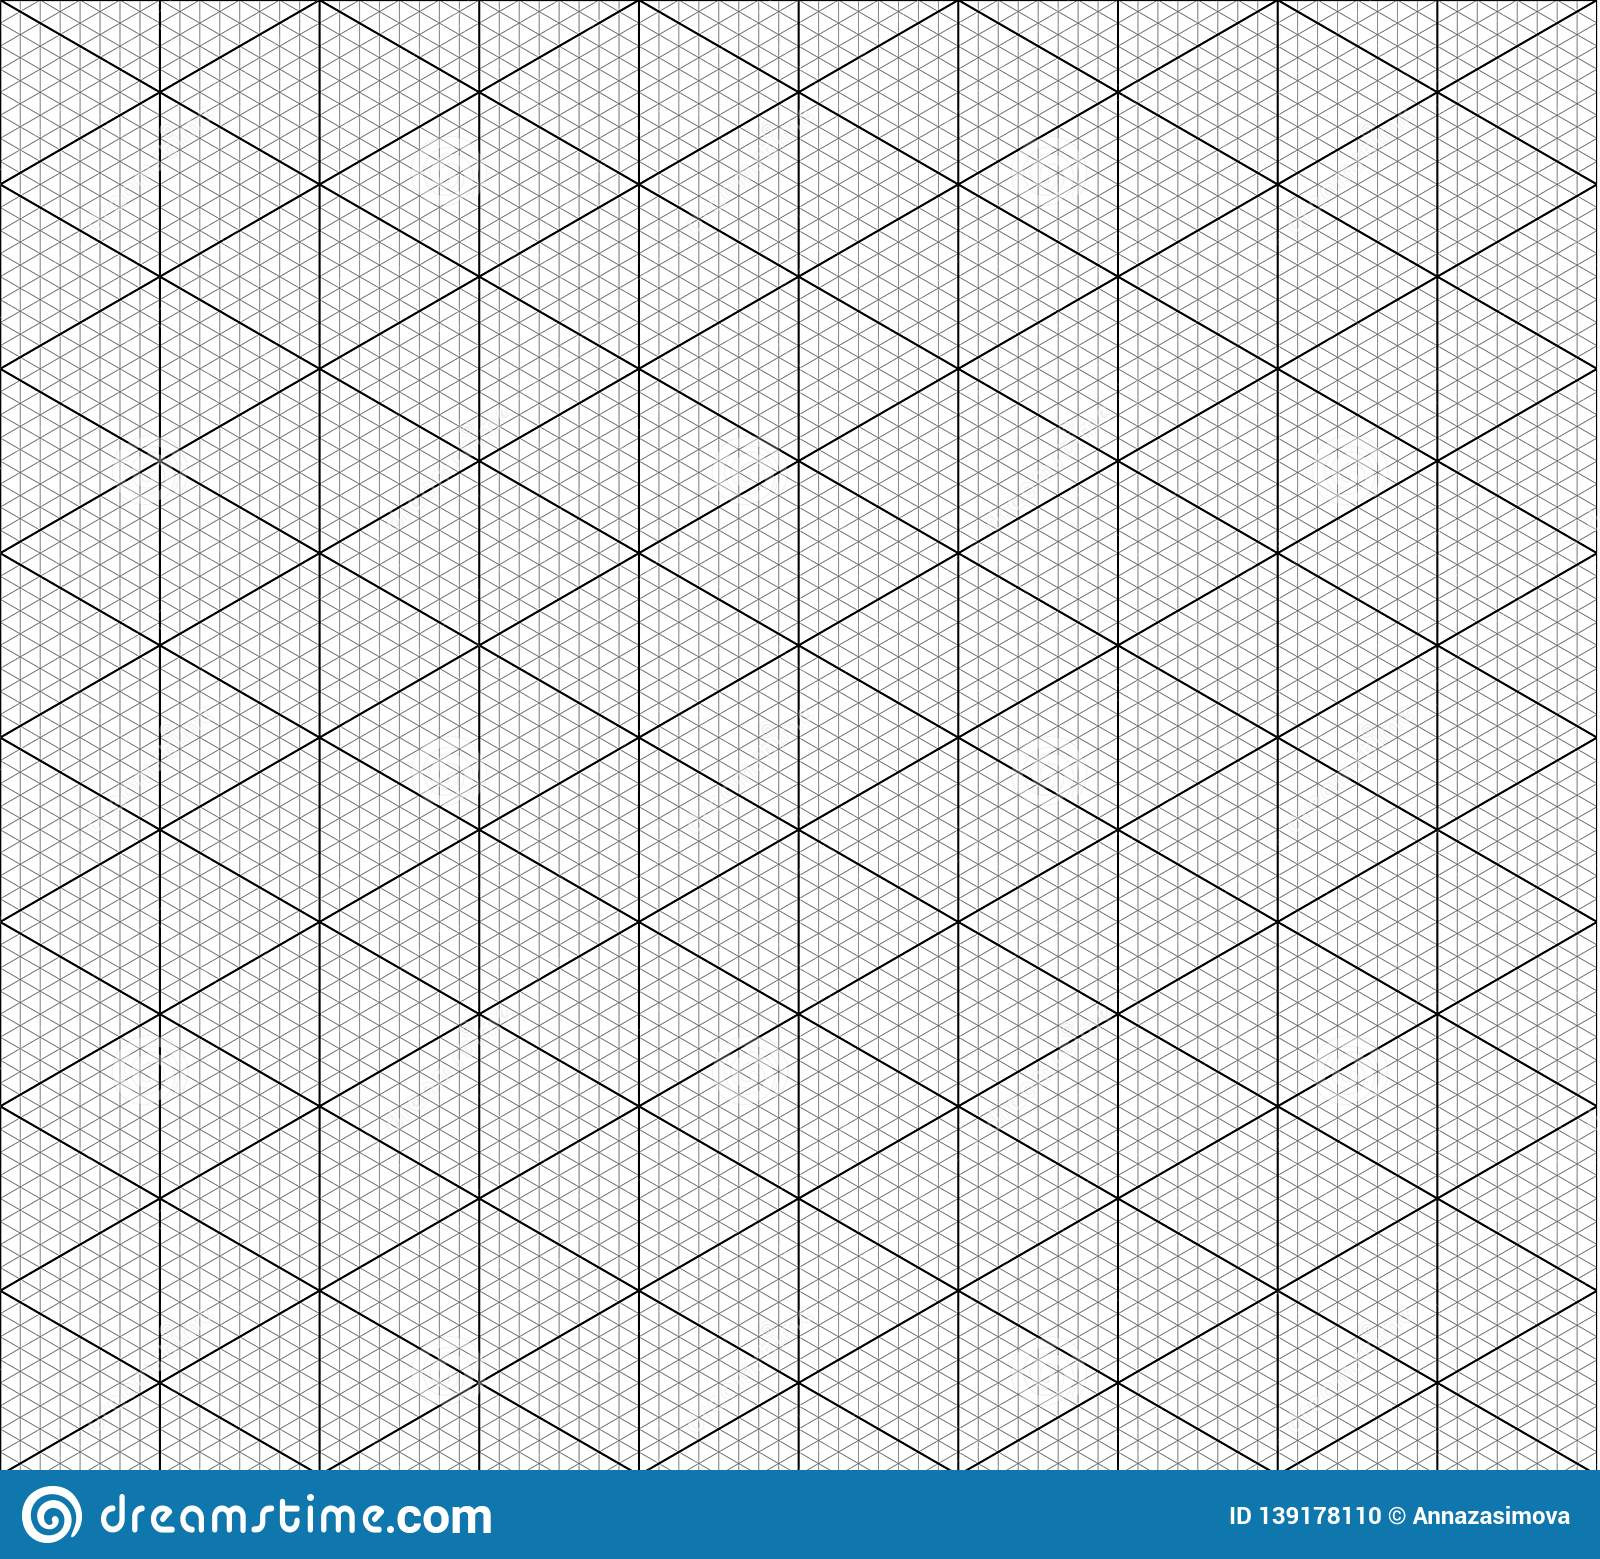 image relating to Printable Isometric Graph Paper known as Isometric Graph Paper Heritage. Calculated Grid. Graph